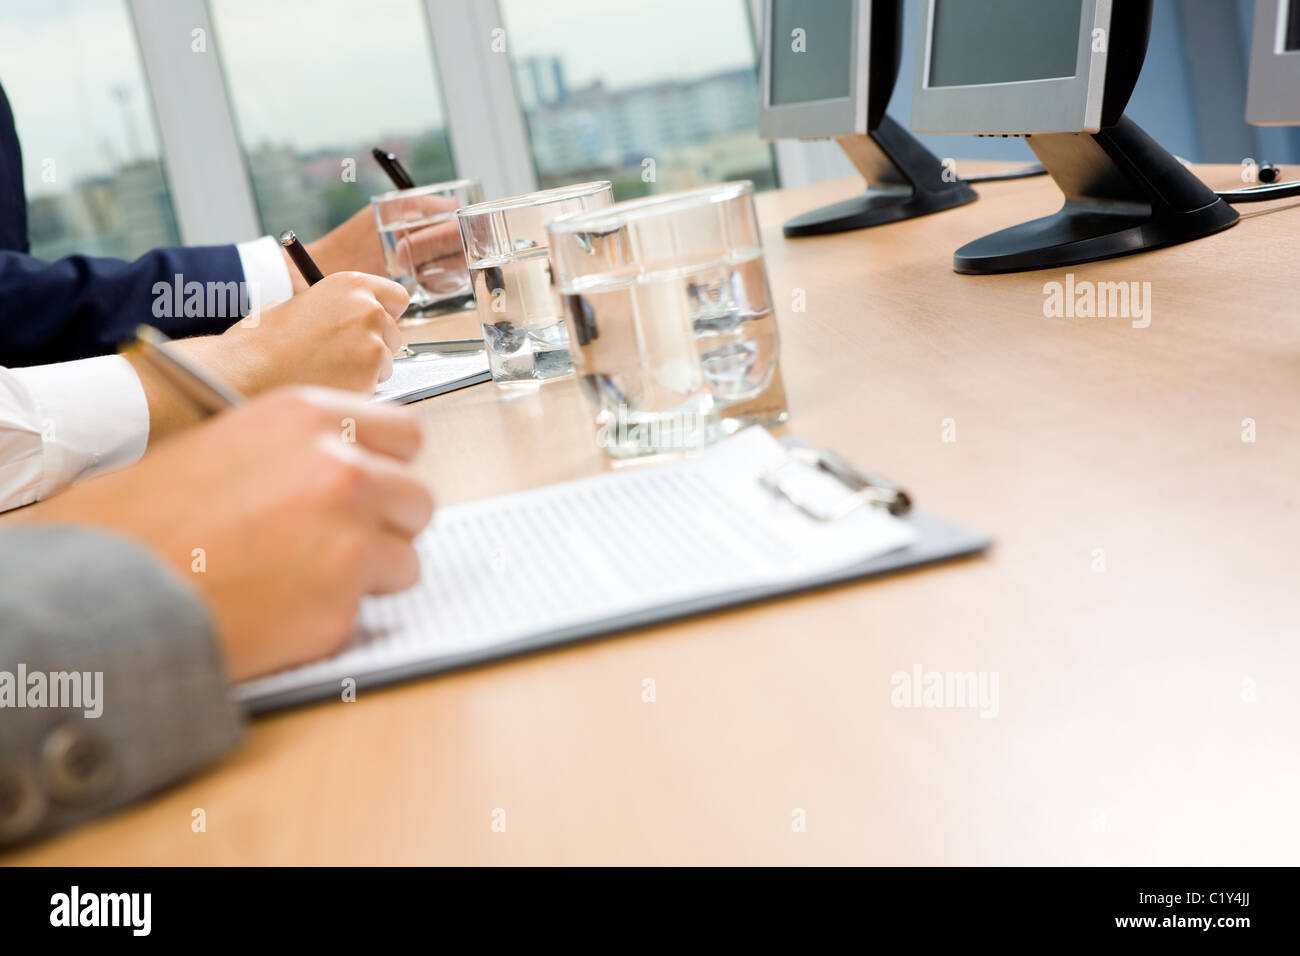 Row of human hands holding pen and making notes with glass of water and monitors near by - Stock Image